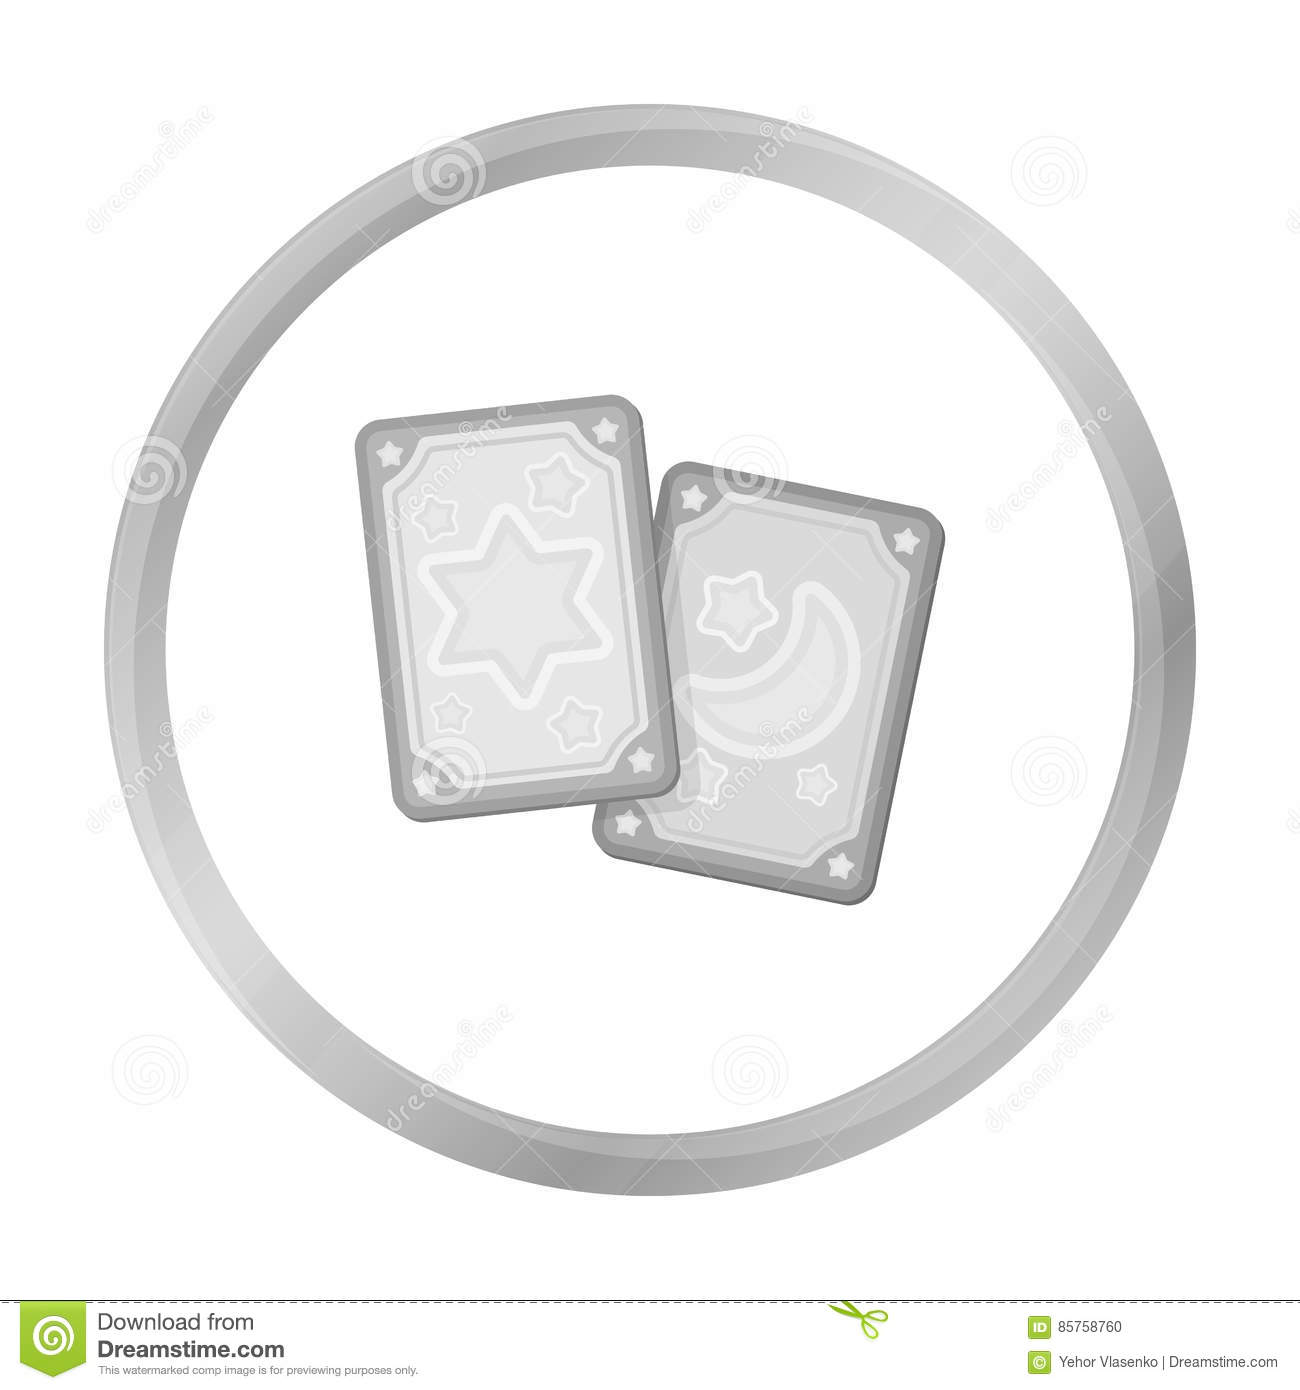 Tarot Cards Icon In Monochrome Style Isolated On White Background